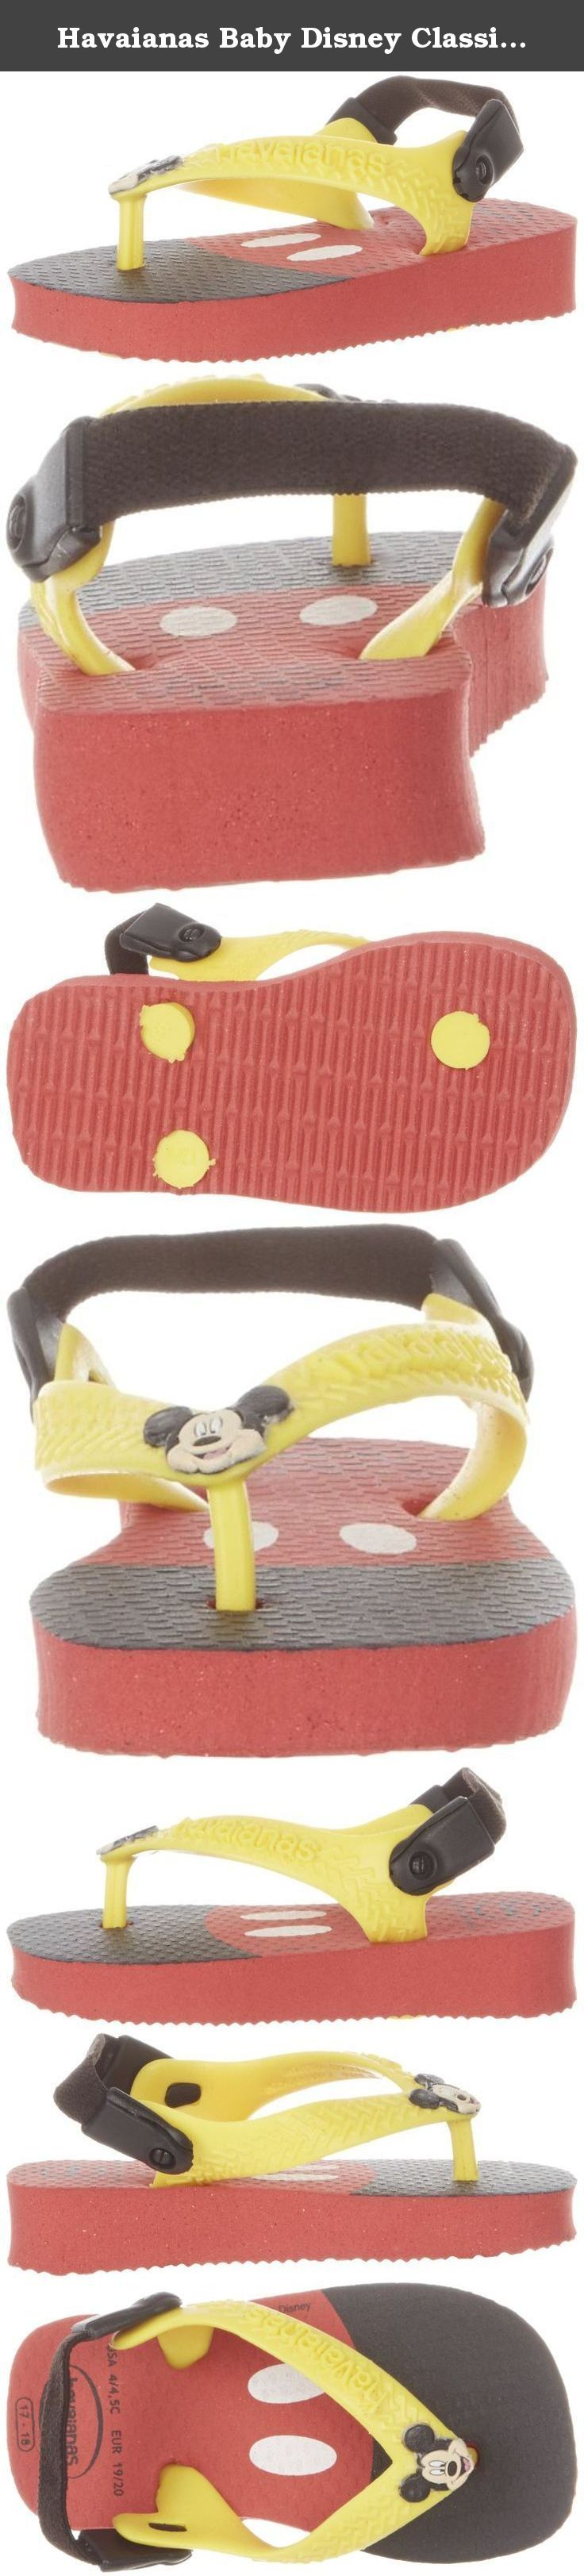 Havaianas Baby Disney Classics Flip Flop (Toddler/Little Kid),Ruby Red,20 BR(6 M US Toddler). Inspired by classic Disney characters, this flip flop features a cloth backstrap for a secure, comfy fit.